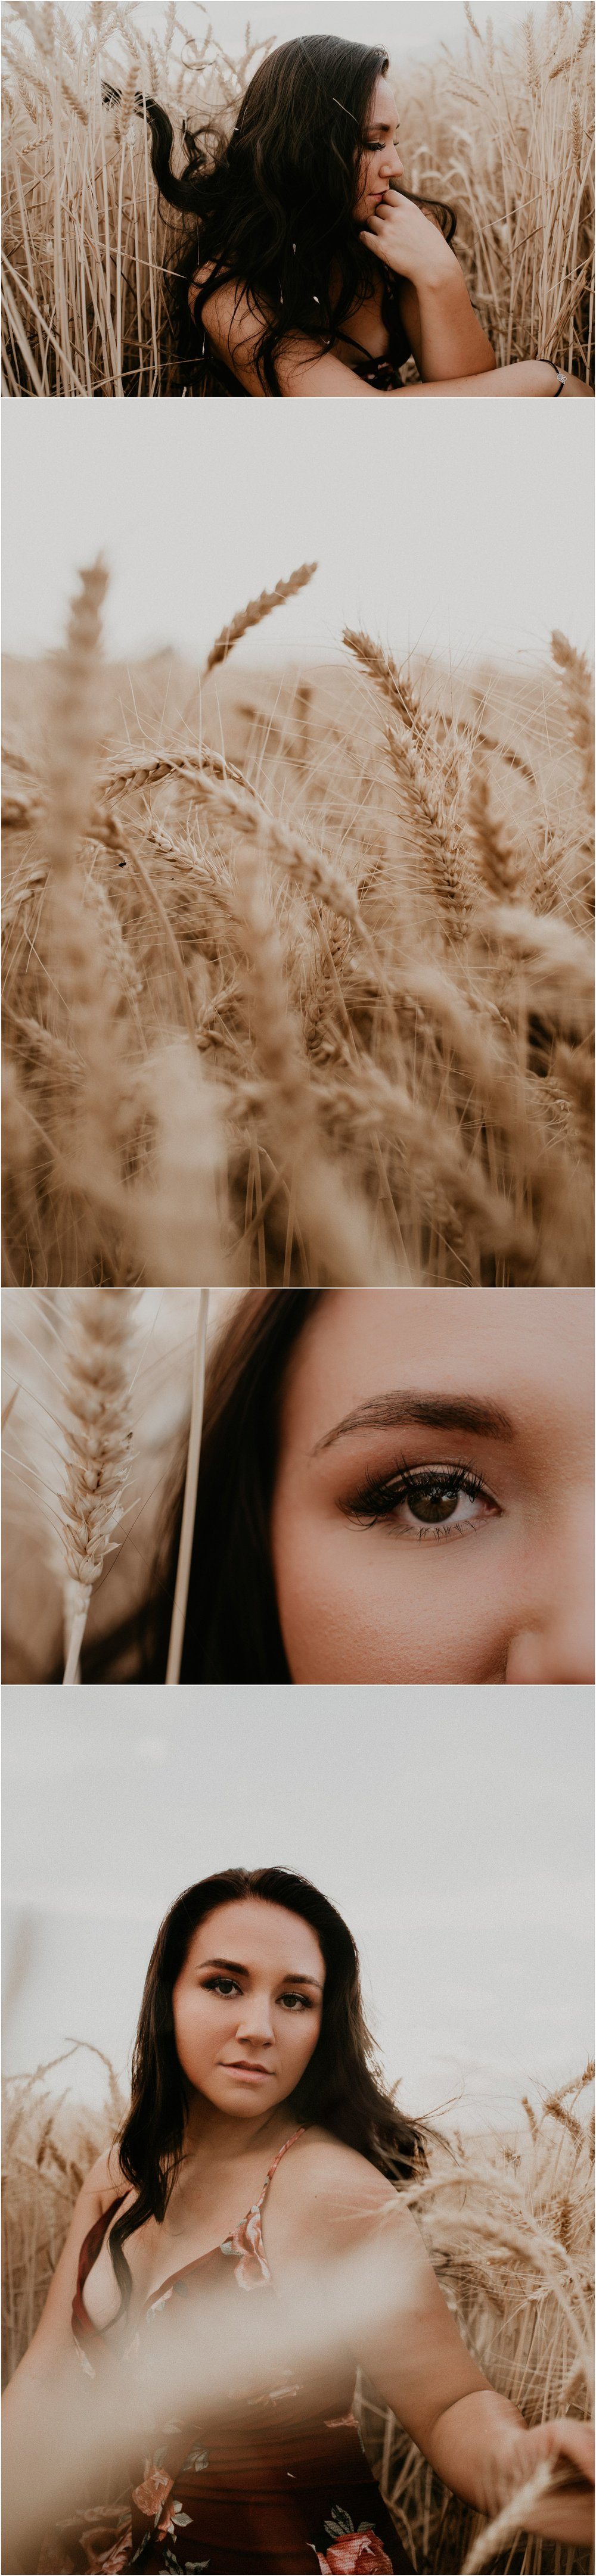 Boise Senior Photographer Makayla Madden Photography Wheat Field Summer Portrait Session Idaho Inspiration Raw Real Beauty Film Unique Sabrina Compass Sunset Golden Hour